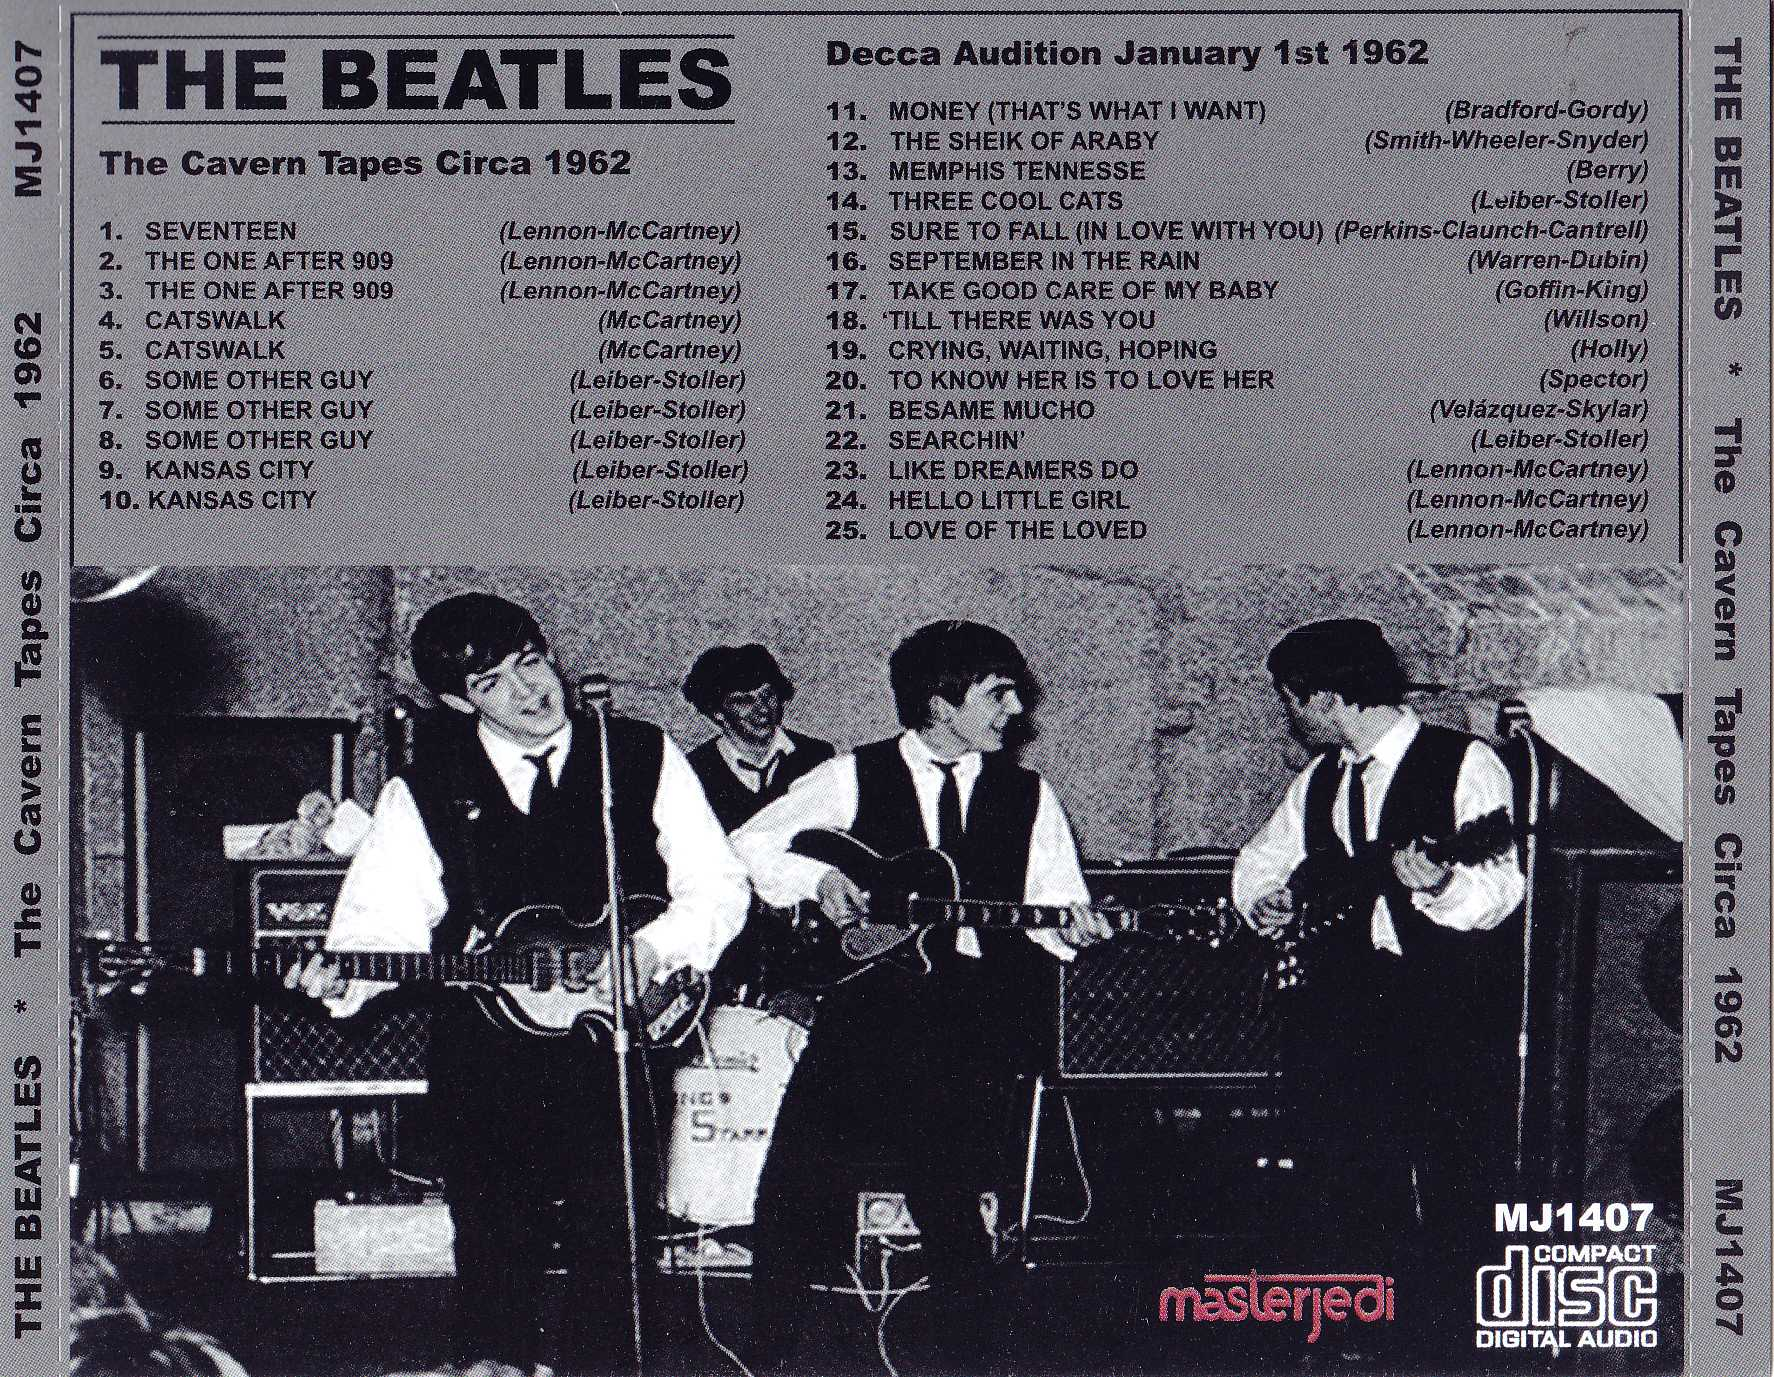 The Beatles - The Cavern Tapes Circa 1962